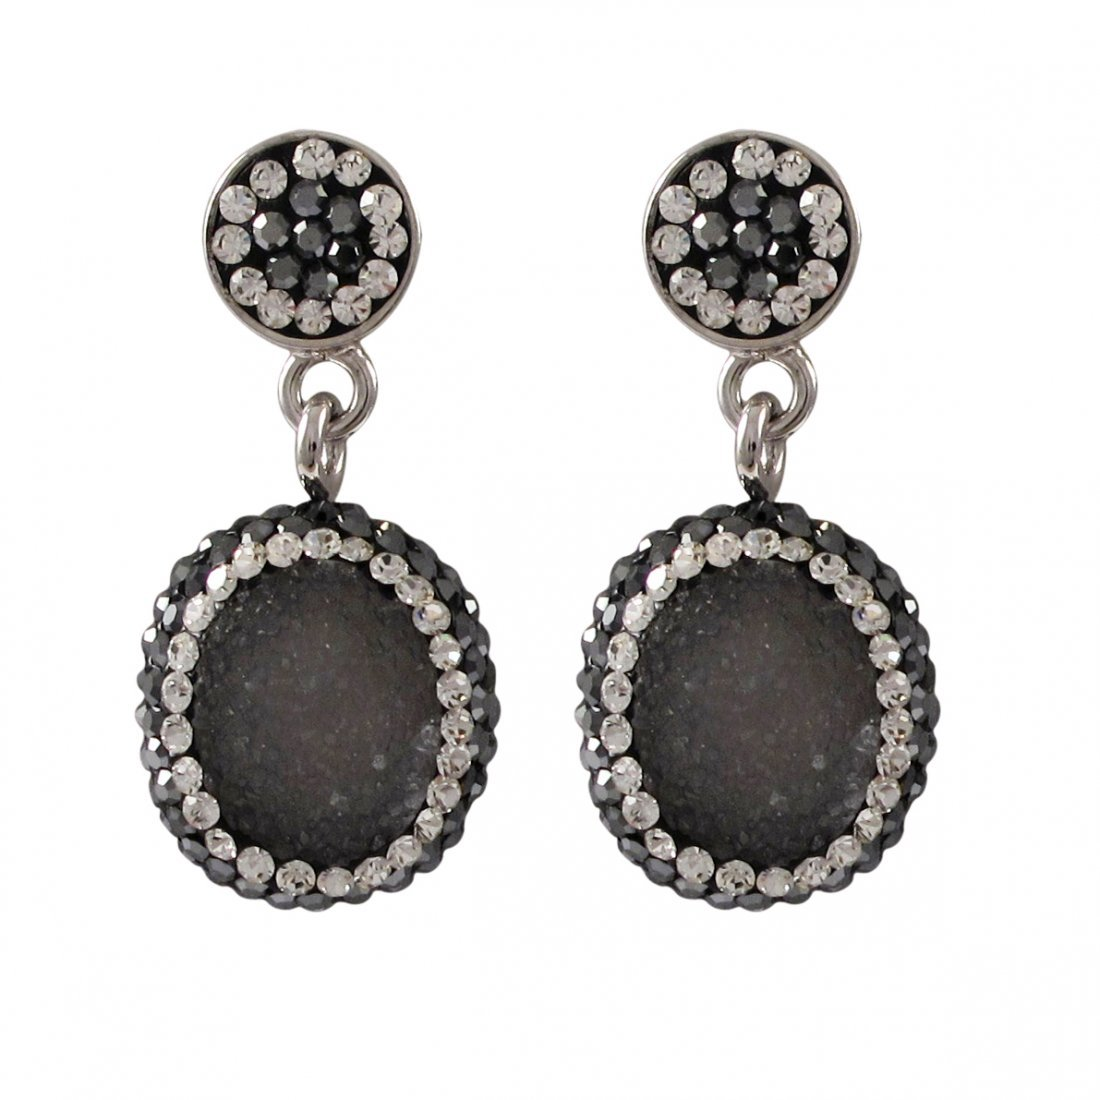 Grey-Blue Druzy Natural Stone Surrounded With White And